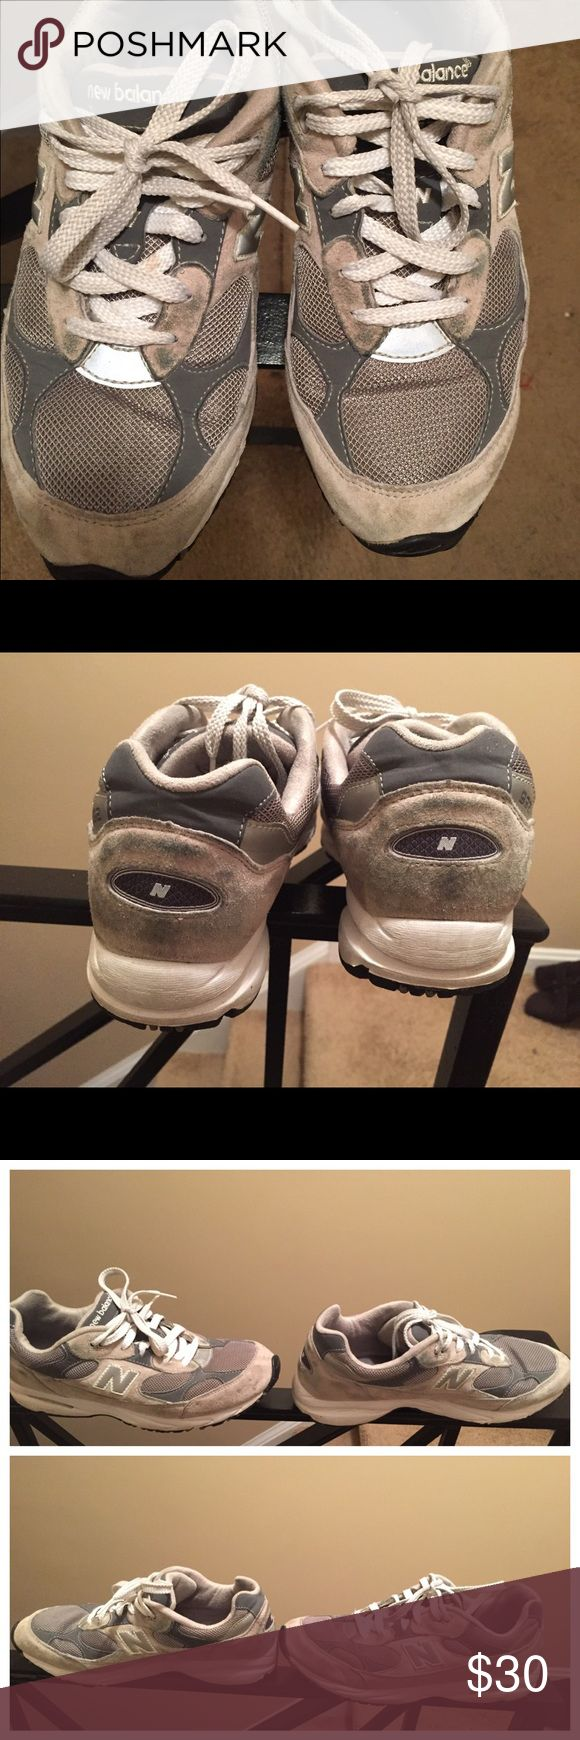 992 New Balance Sneakers size 7y (9 in women's). 992 New Balance Sneakers